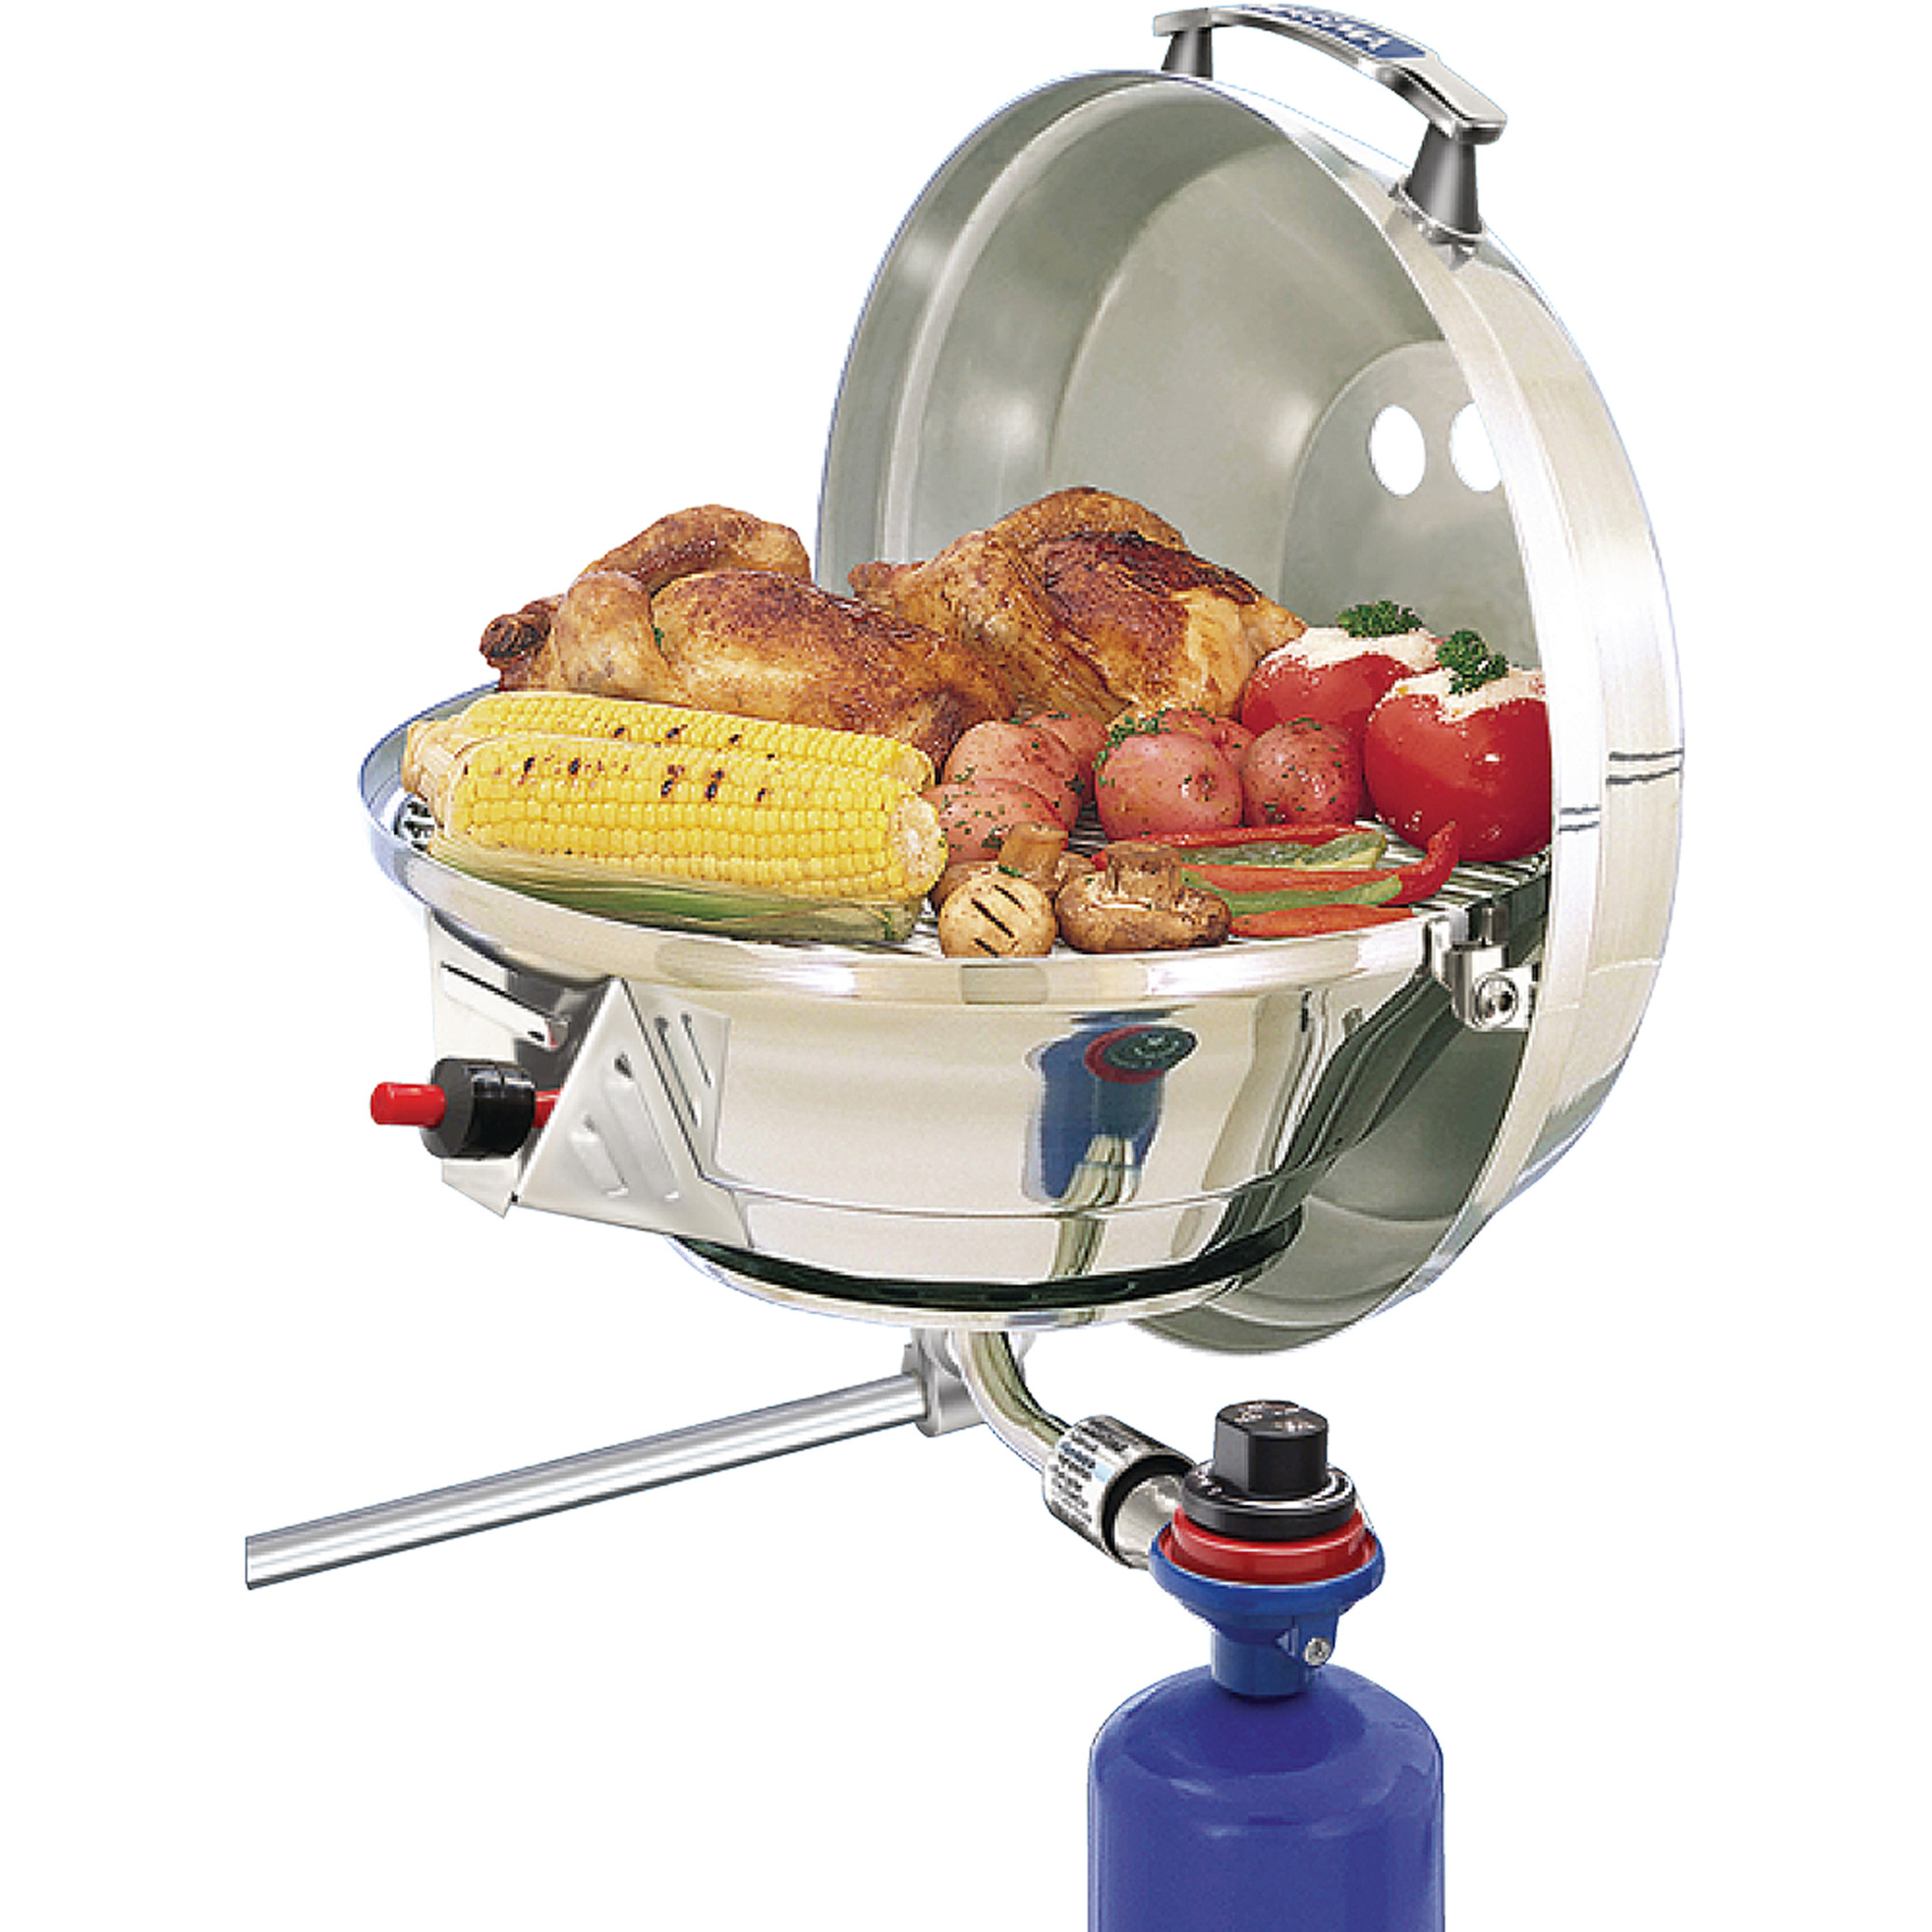 Magma Marine Stainless Steel Kettle 2 Stove and Gas Grill Combo